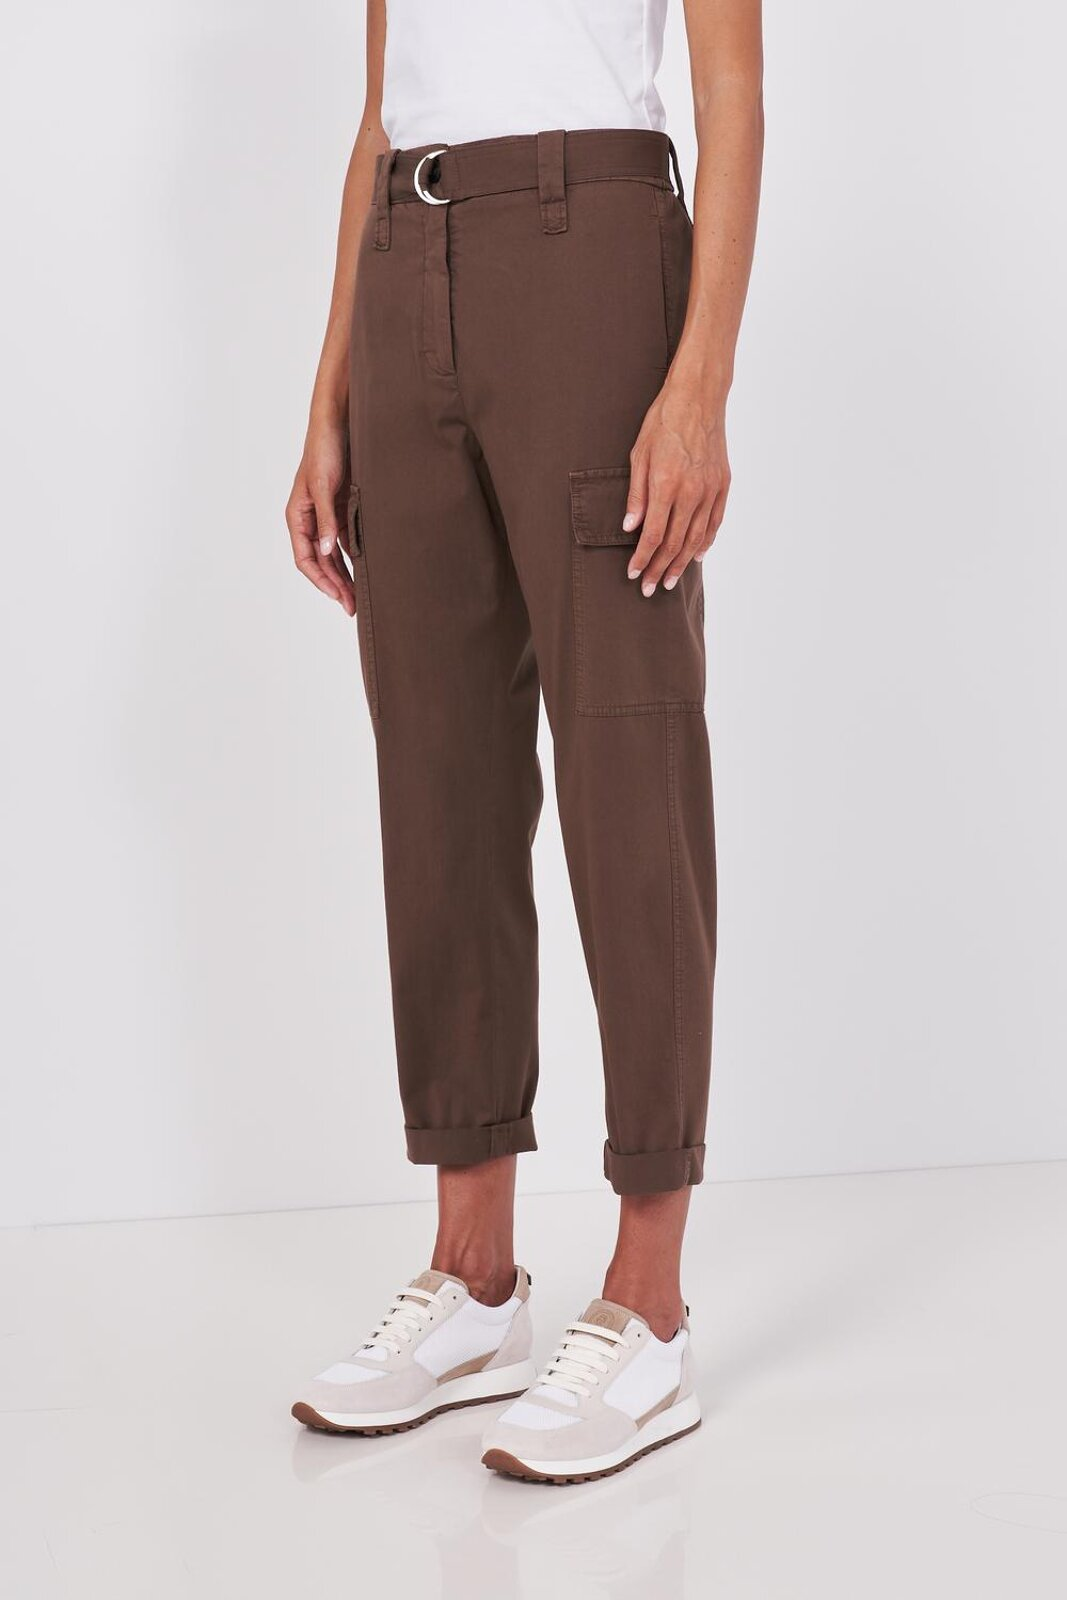 Slightly Stretch Cotton Gabardine Pocket Trousers. Fabric belt at the waist with metal buckle, two pockets on the front, two welt pockets on the back and two pockets applied on the sides. Lapels on the bottom, high waist. Closure With Zip And Bott - Peserico